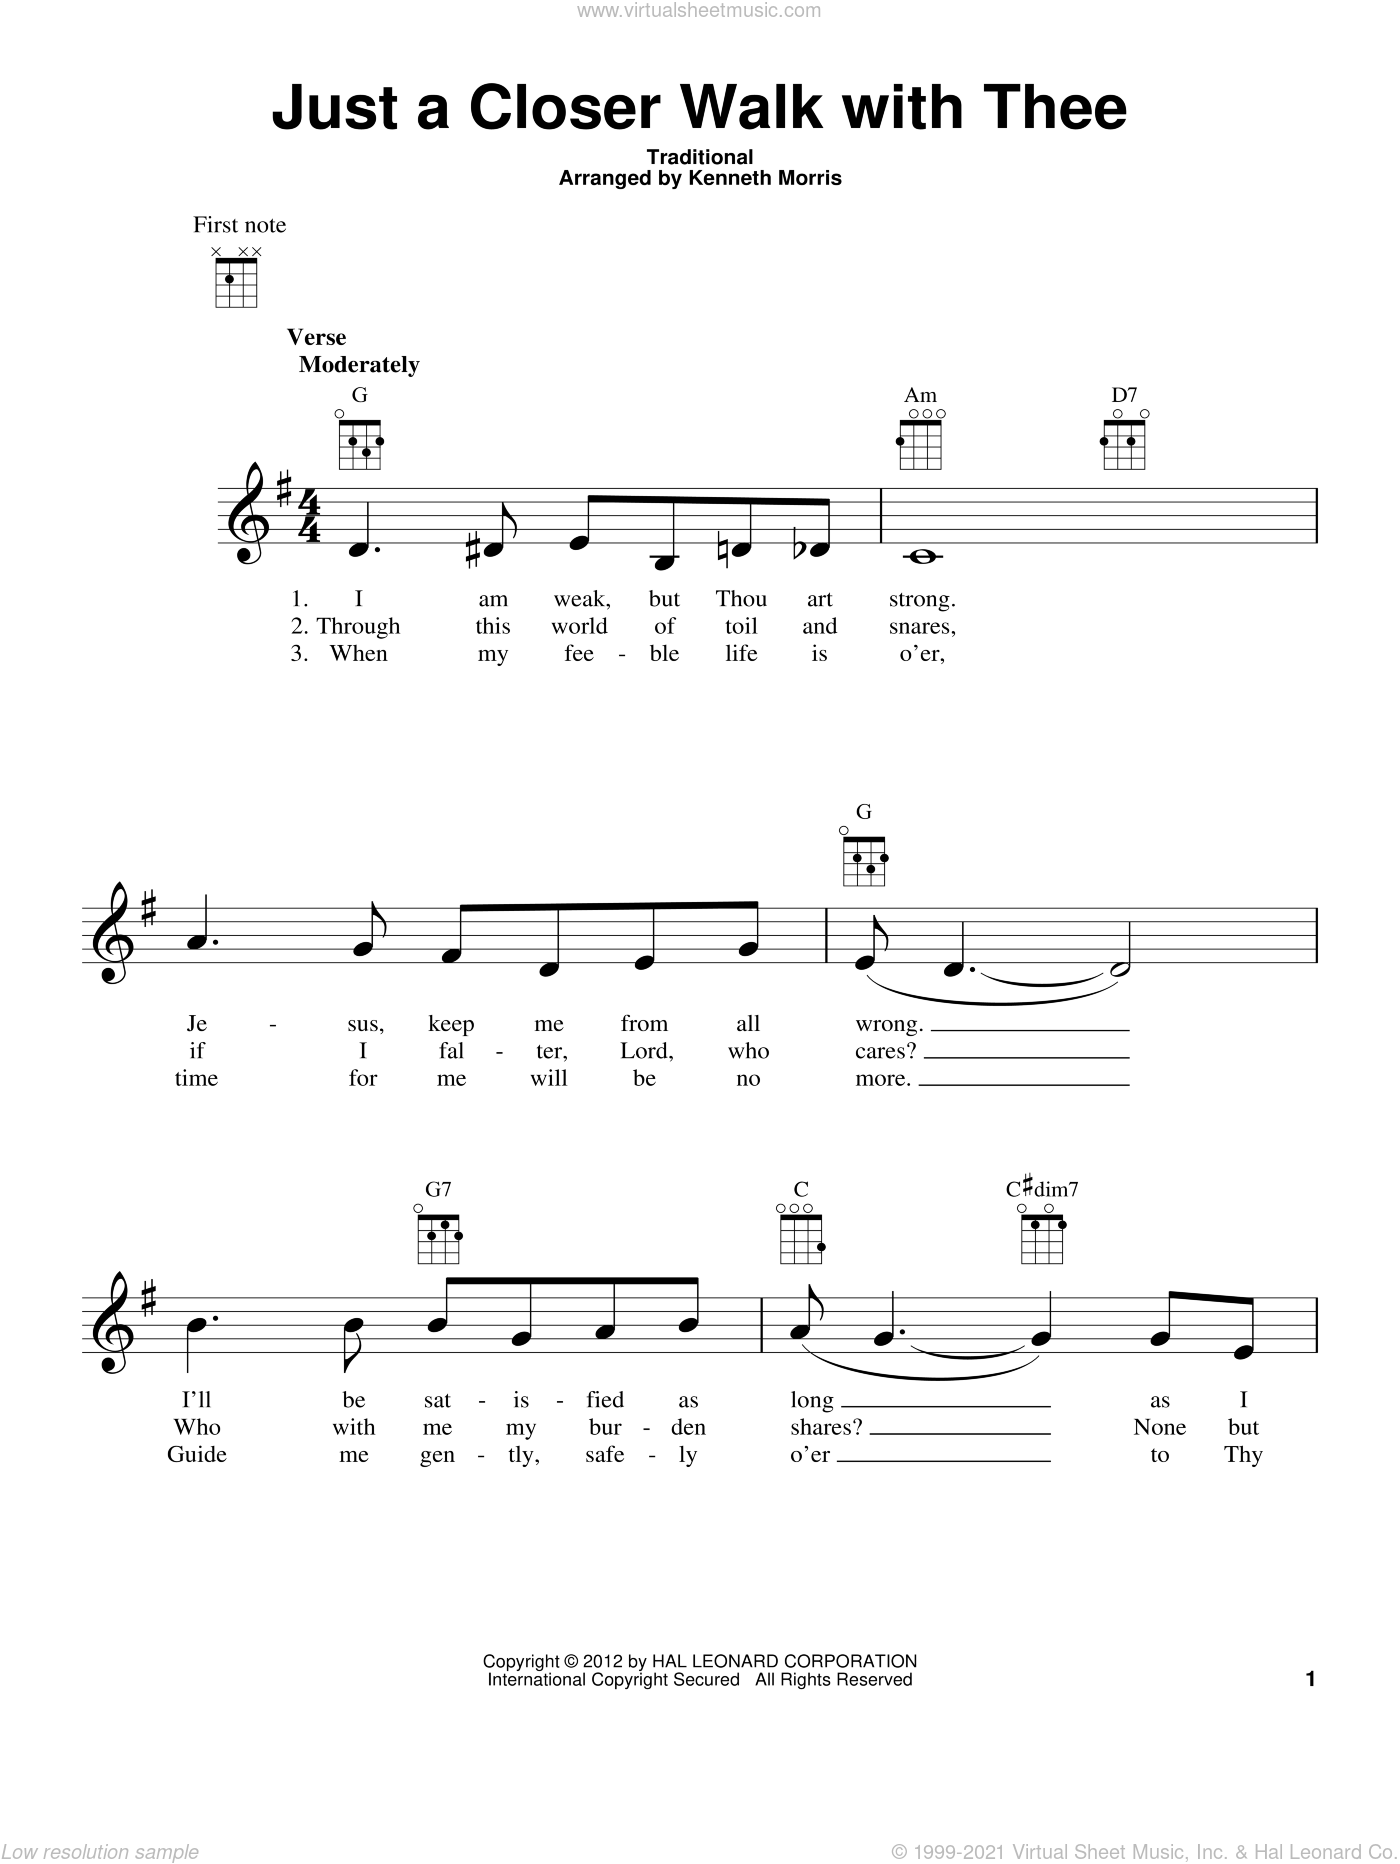 Just A Closer Walk With Thee sheet music for ukulele by Kenneth Morris